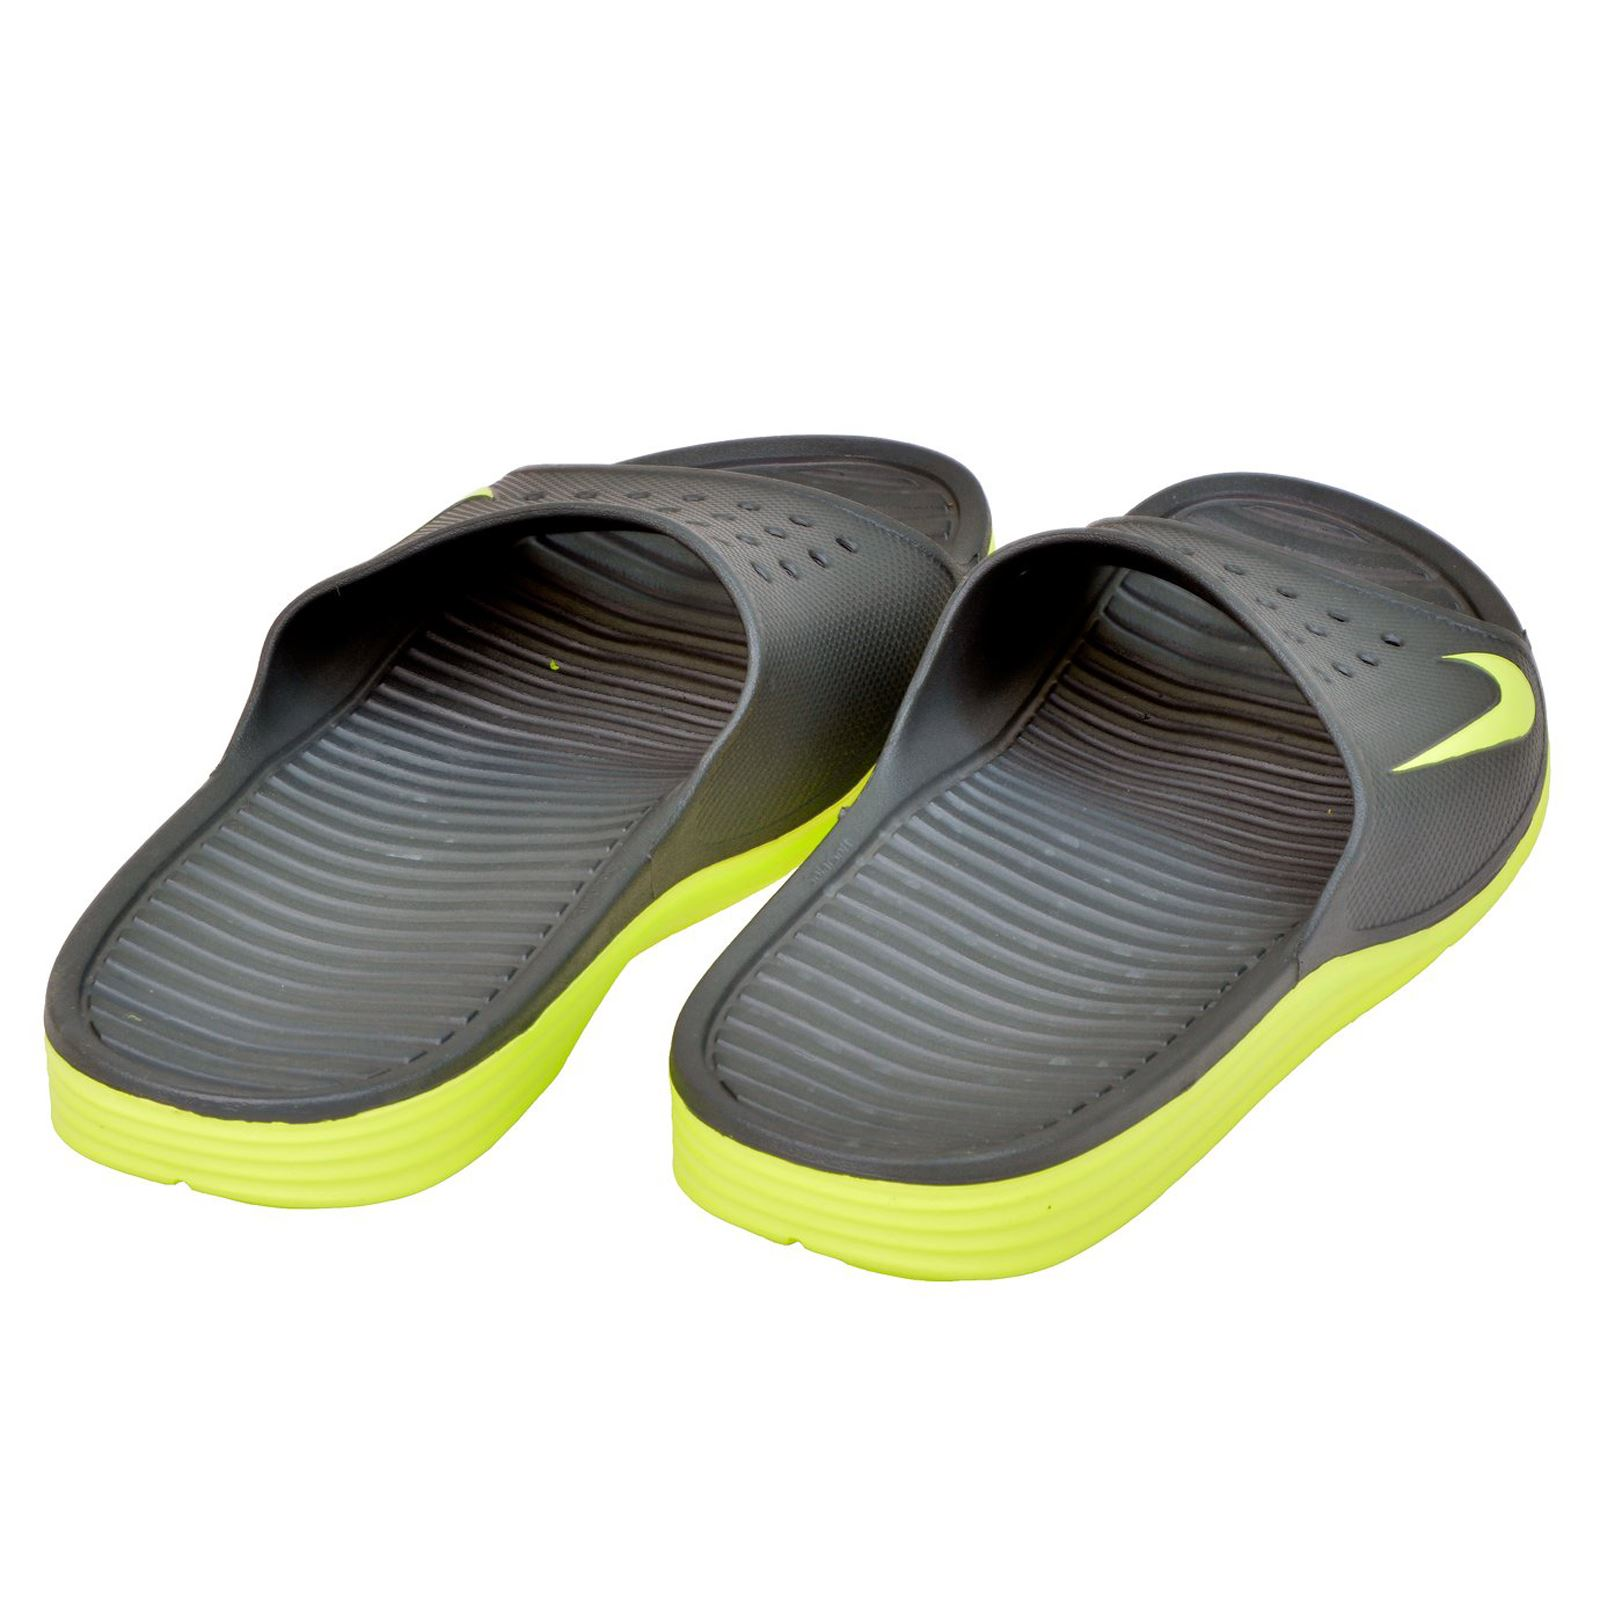 newest 0d444 fb445 nike air moray slide images for sale on ebay